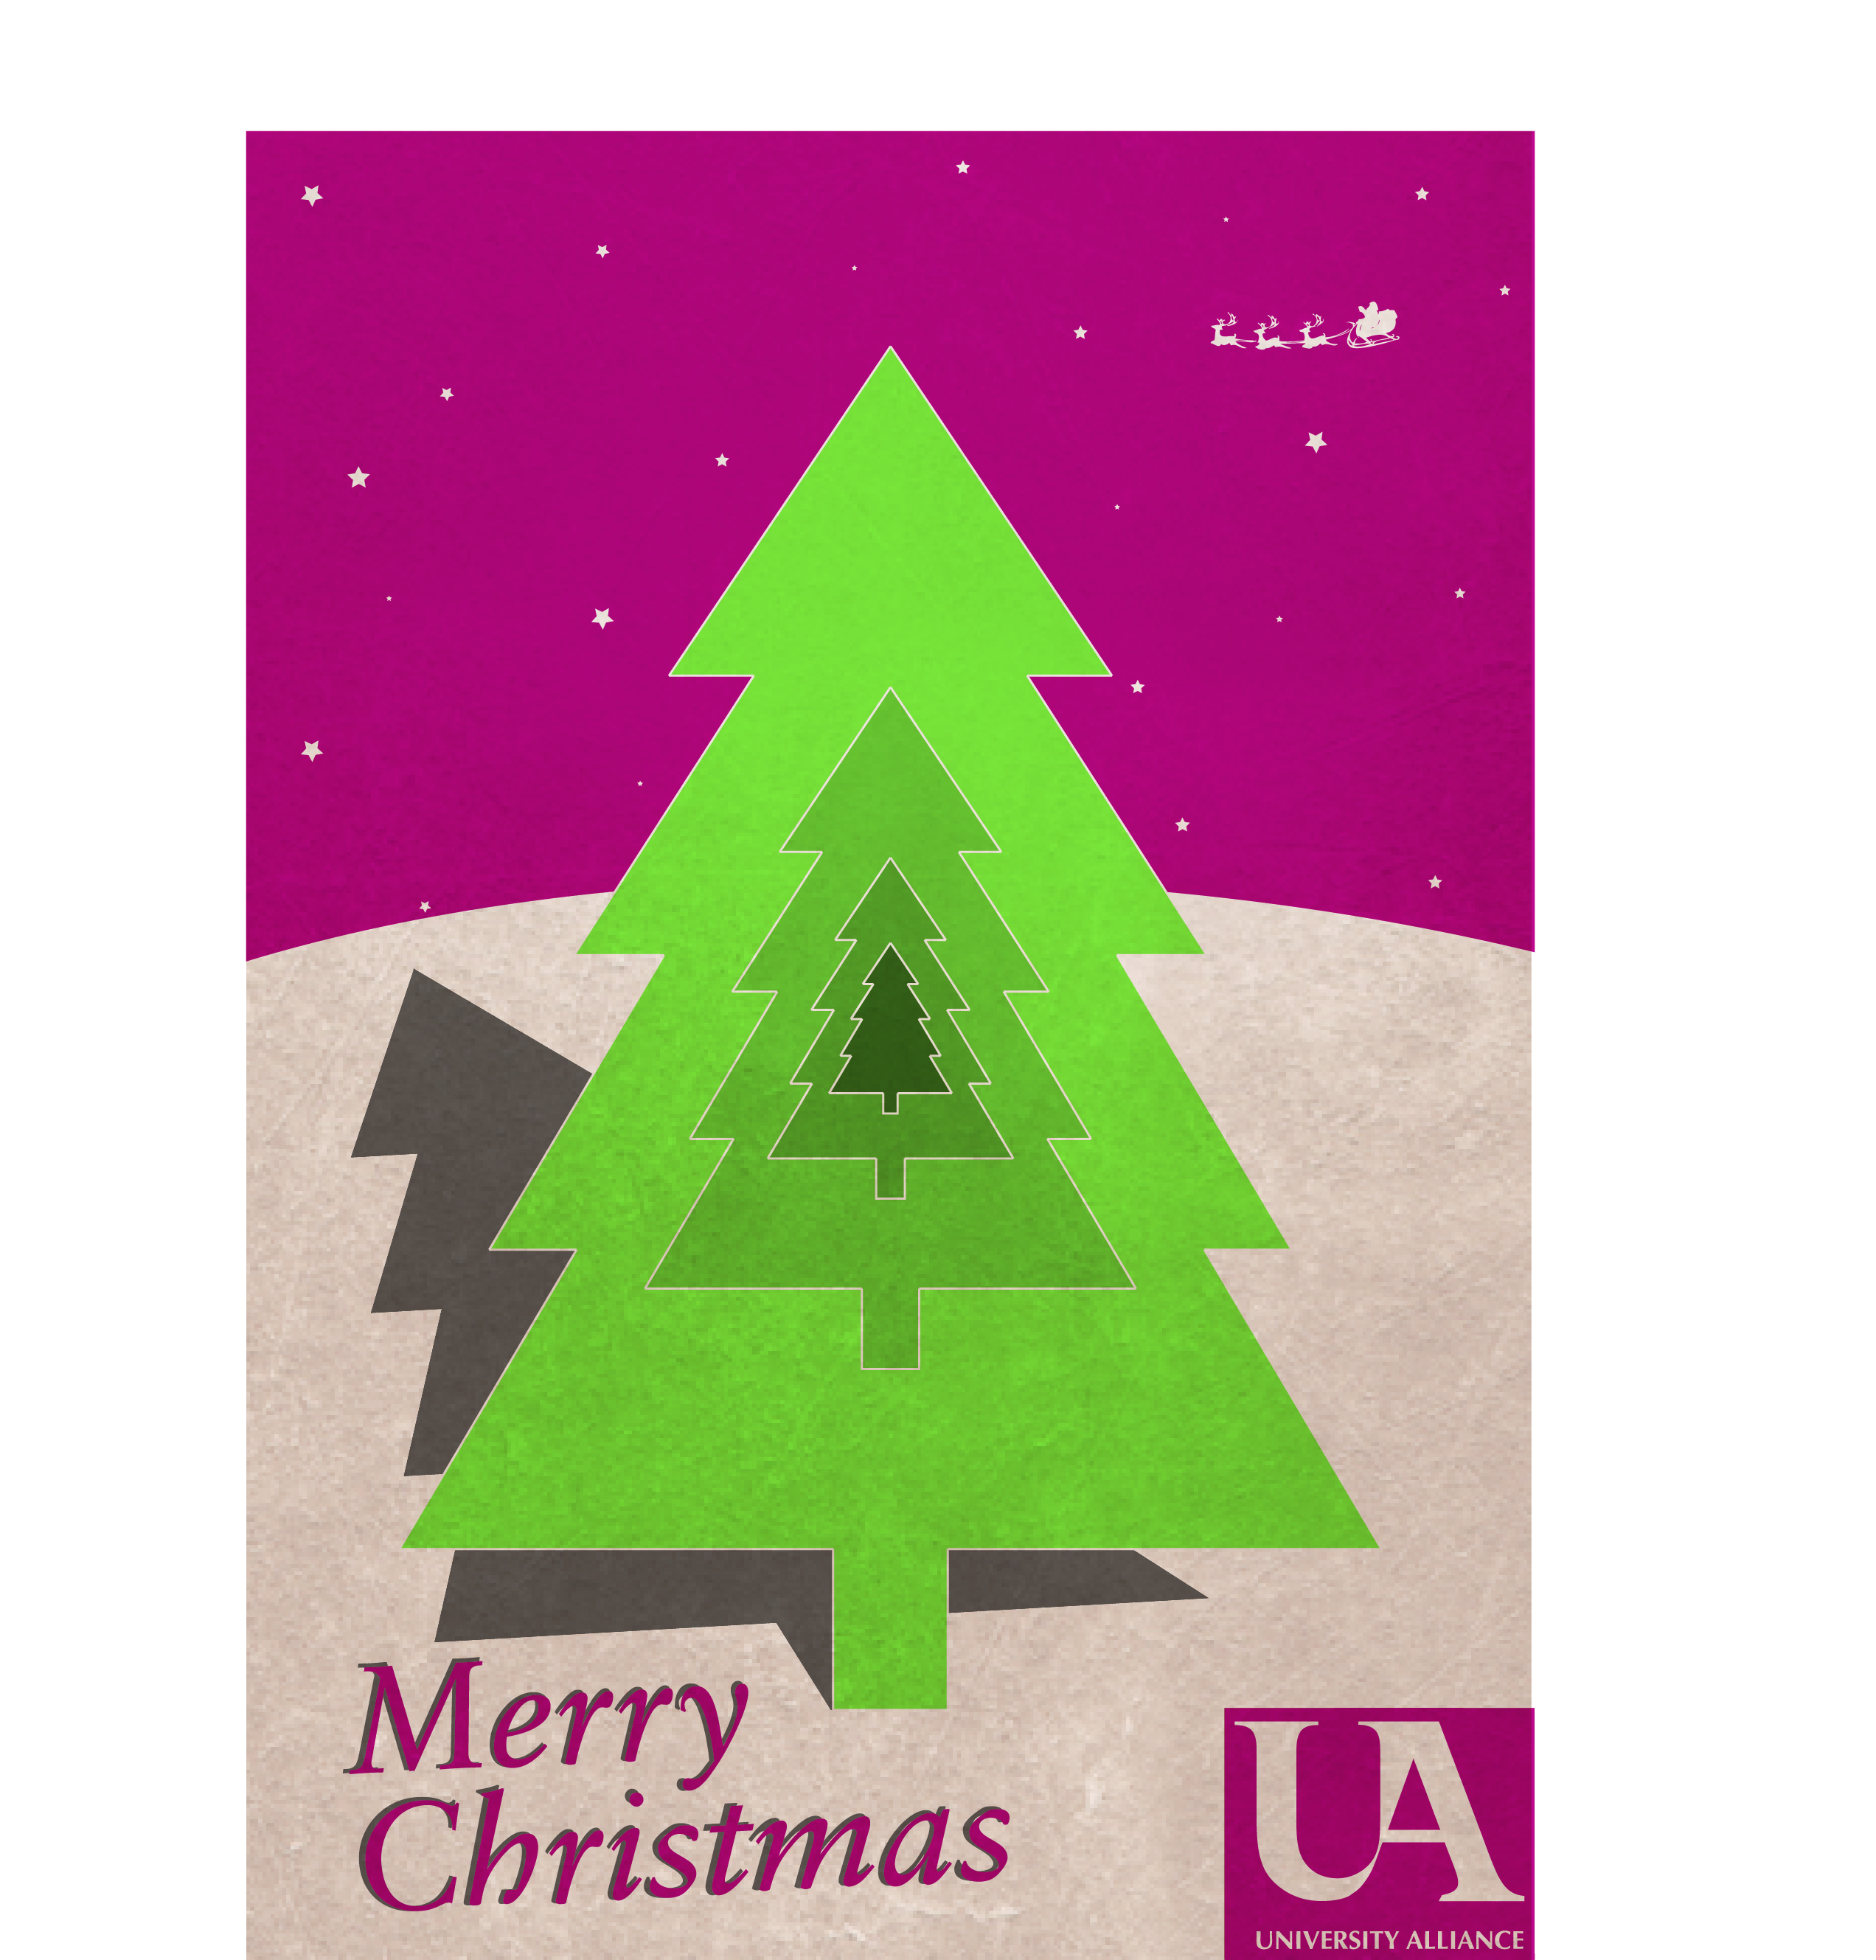 Congratulations to the winner of our Christmas card design ...